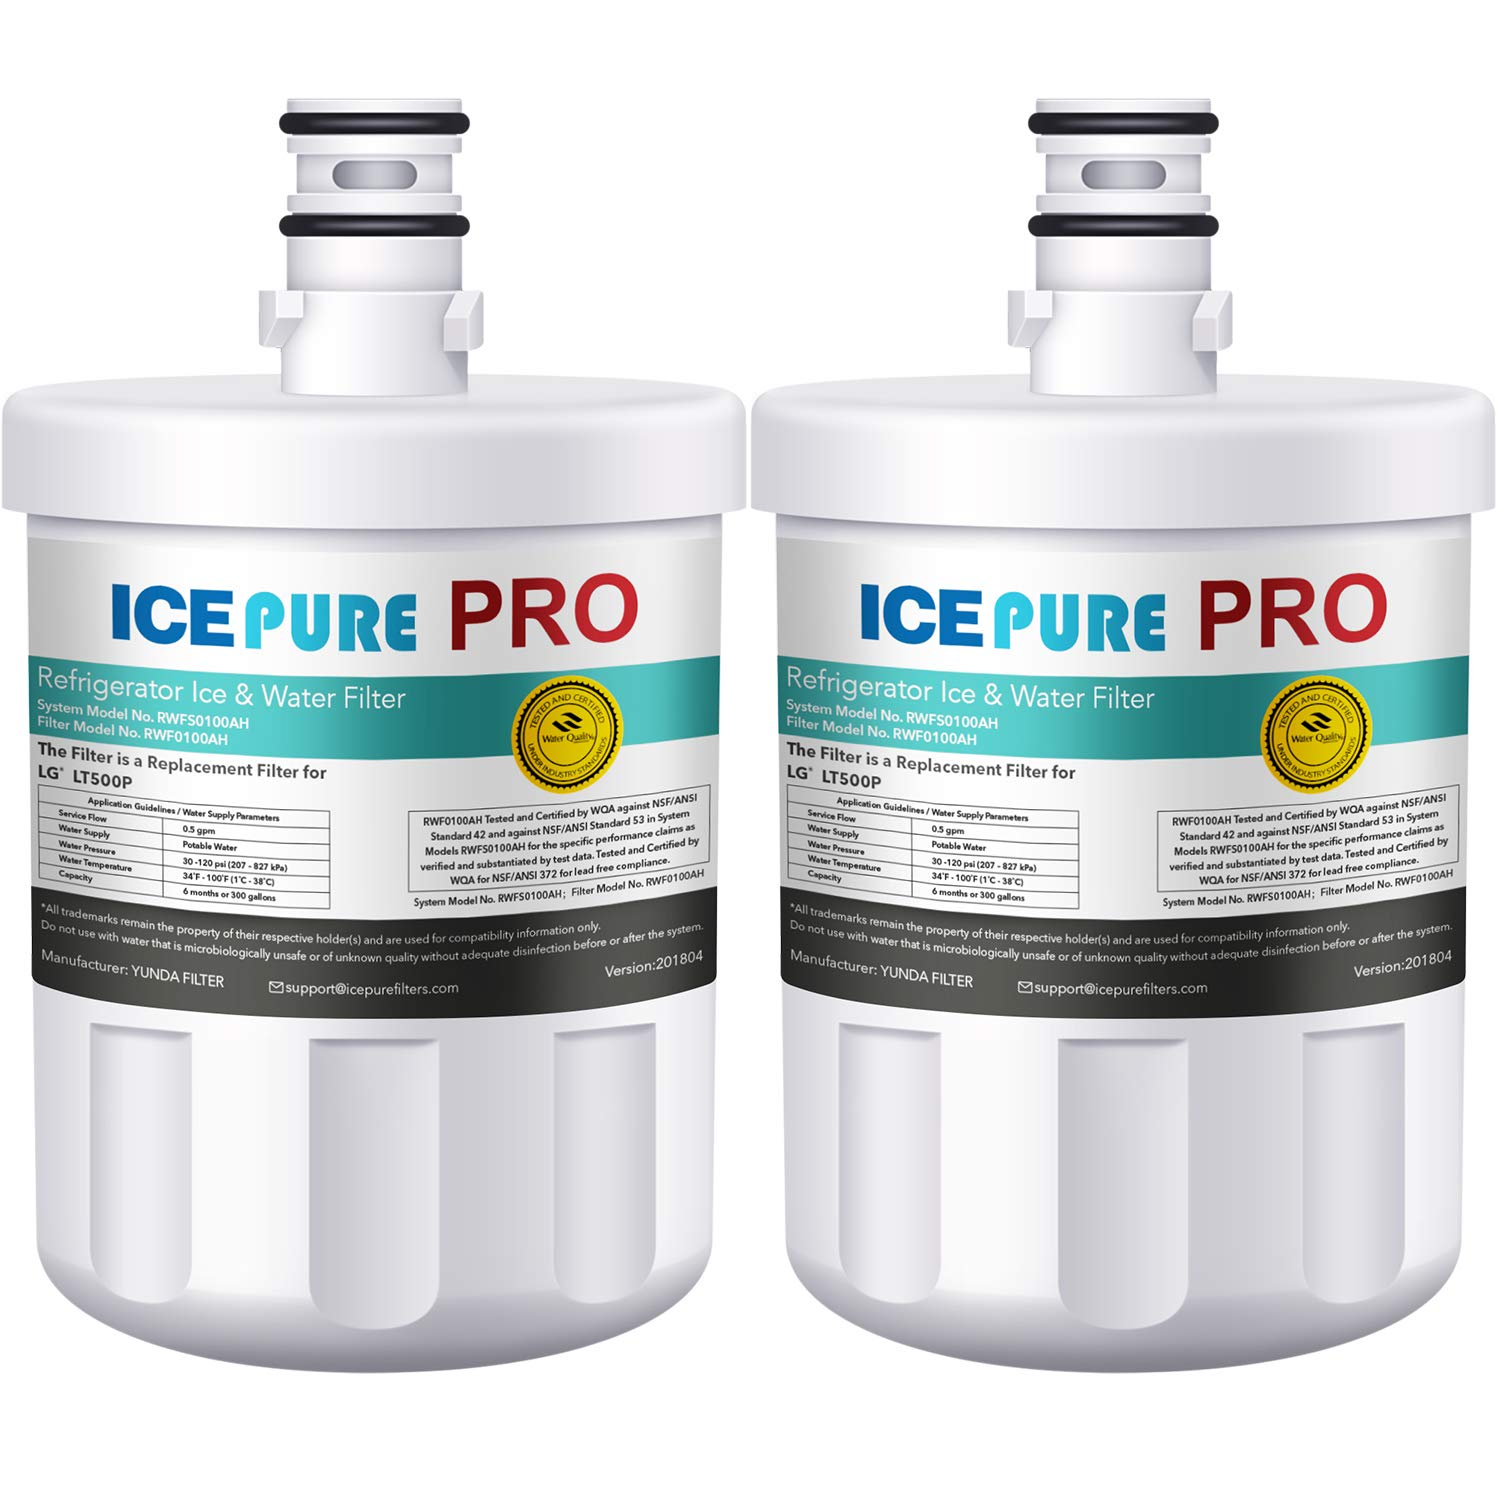 ICEPURE PRO LT500P NSF 53&42 Certified Refrigerator Water Filter, Compatible with LG LT500P, 5231JA2002A, ADQ72910901, Kenmore GEN11042FR-08, 9890, 46-9890, LFX25974ST, Advanced Series (2 PACK)